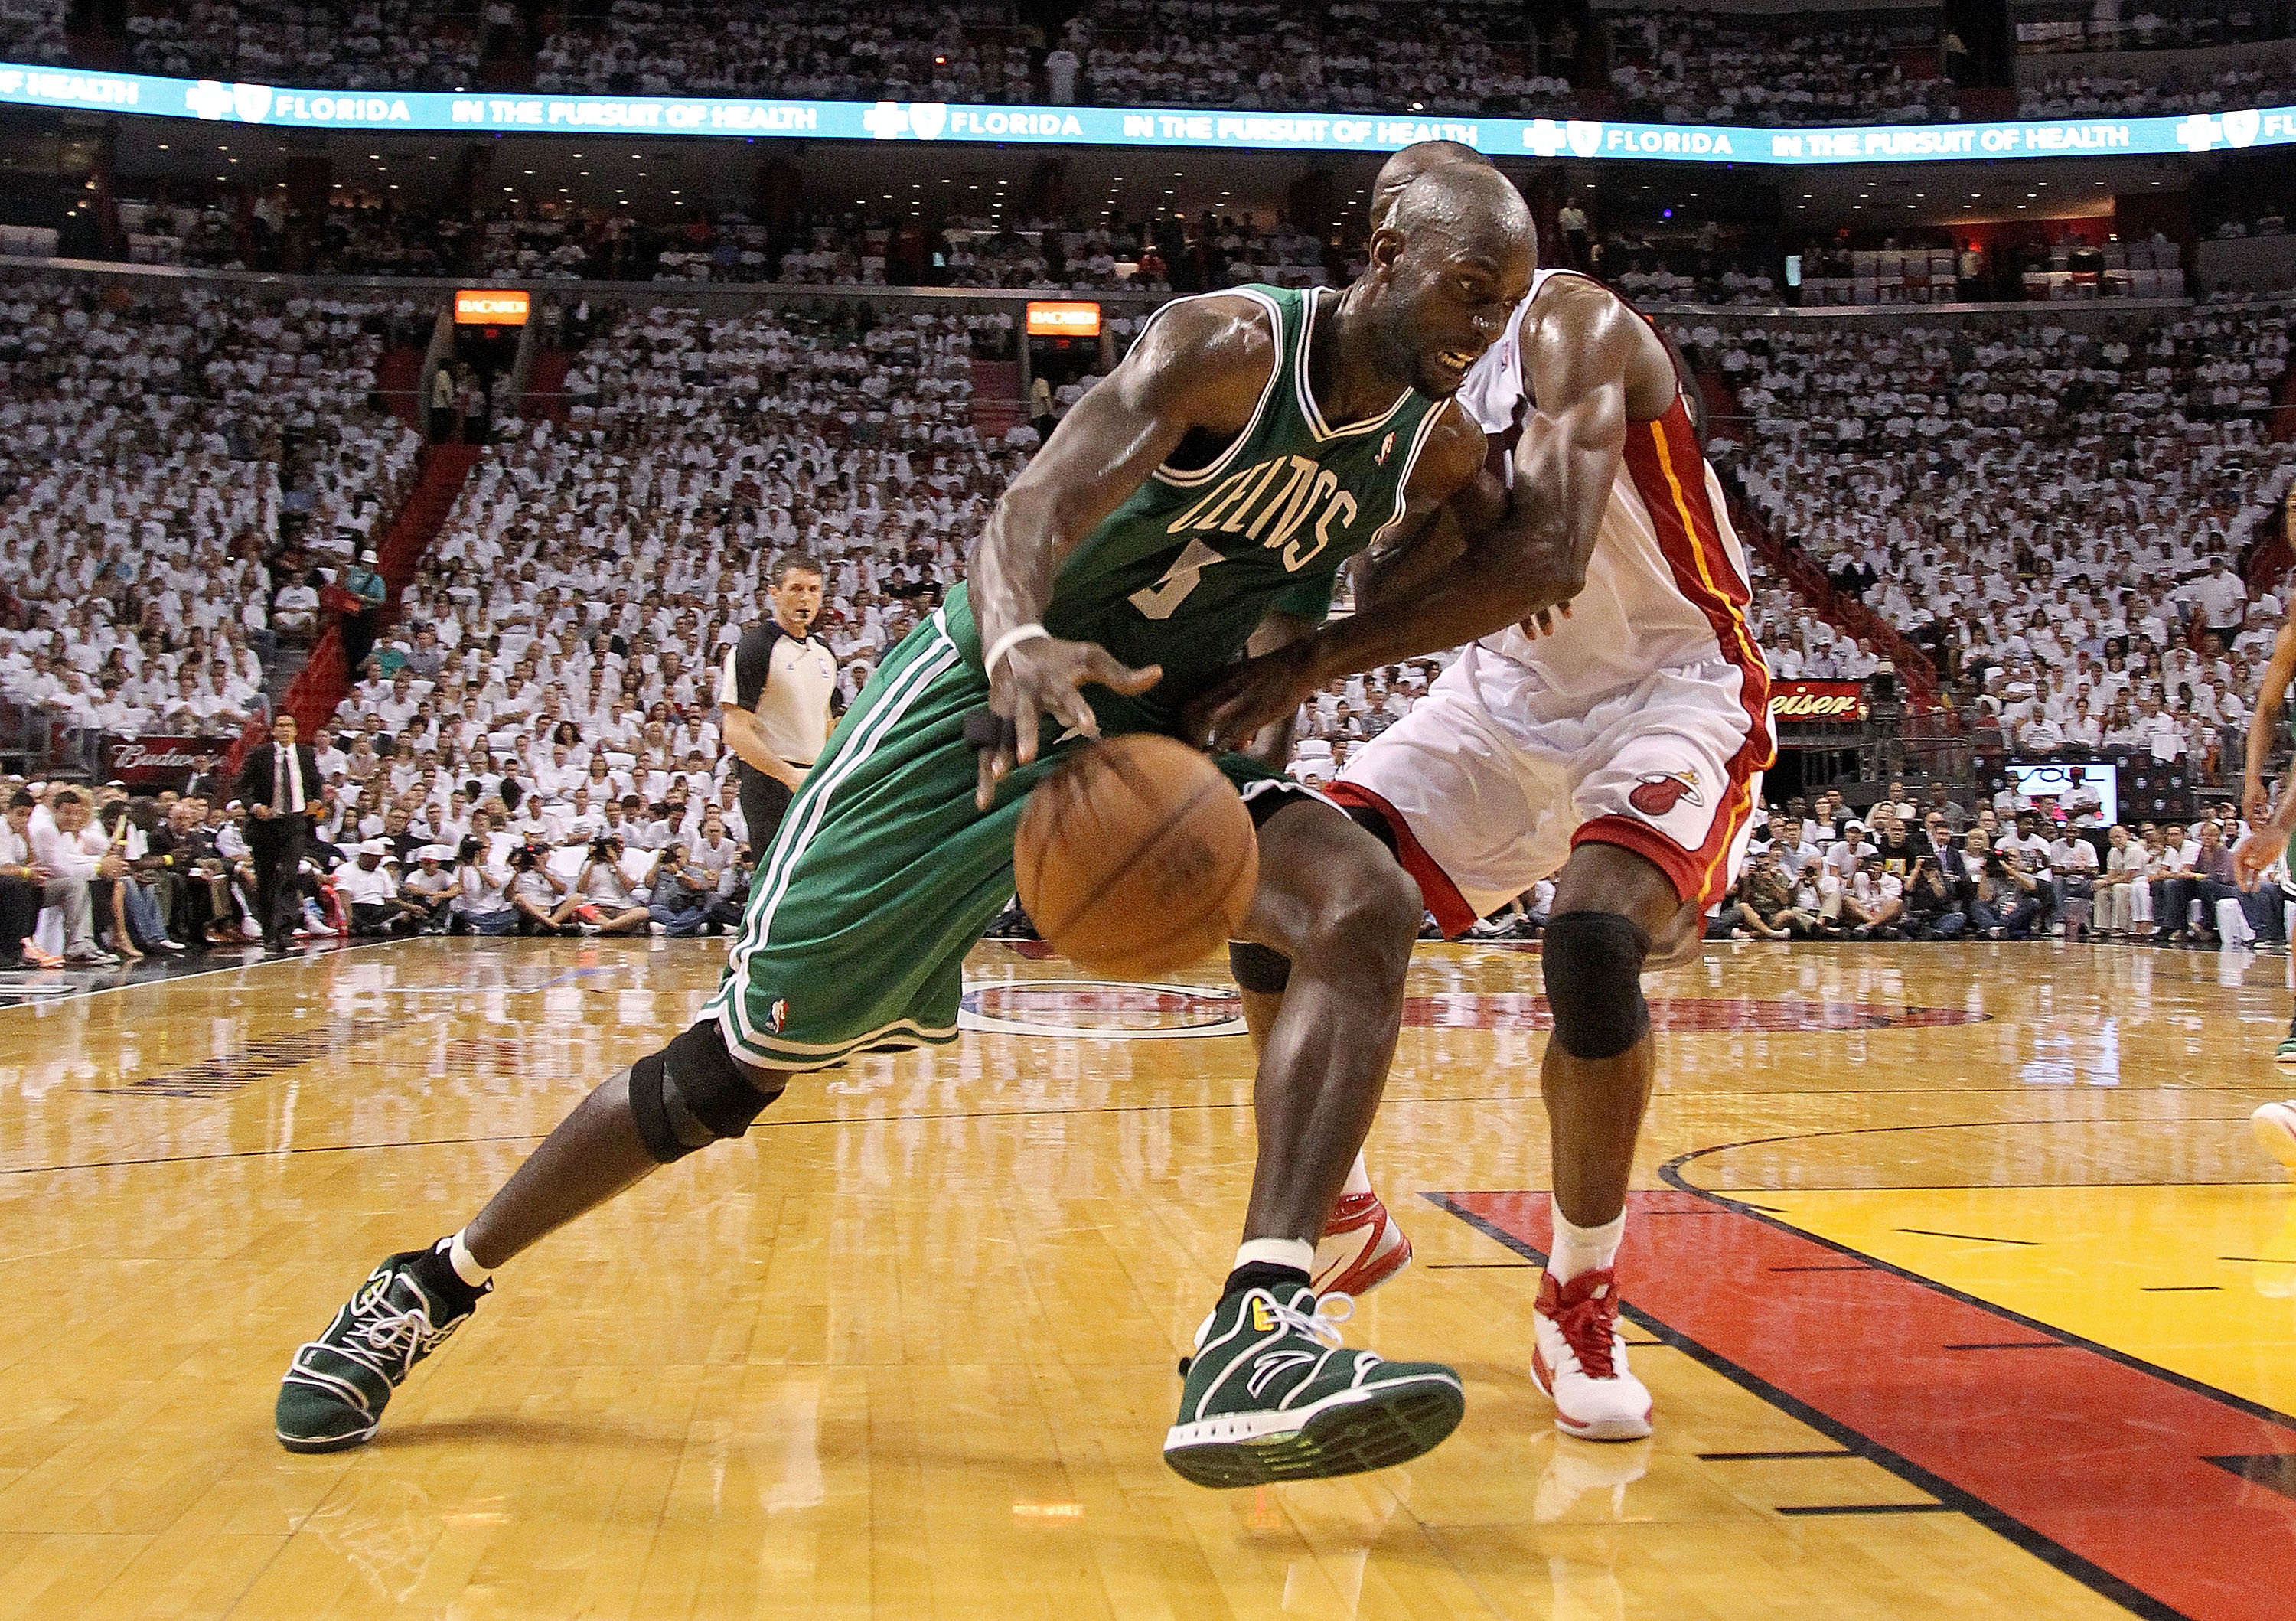 MIAMI, FL - MAY 11: Kevin Garnett #5 of the Boston Celtics drives against Joel Anthony #50 of the Miami Heat during Game Five of the Eastern Conference Semifinals of the 2011 NBA Playoffs at American Airlines Arena on May 11, 2011 in Miami, Florida. NOTE